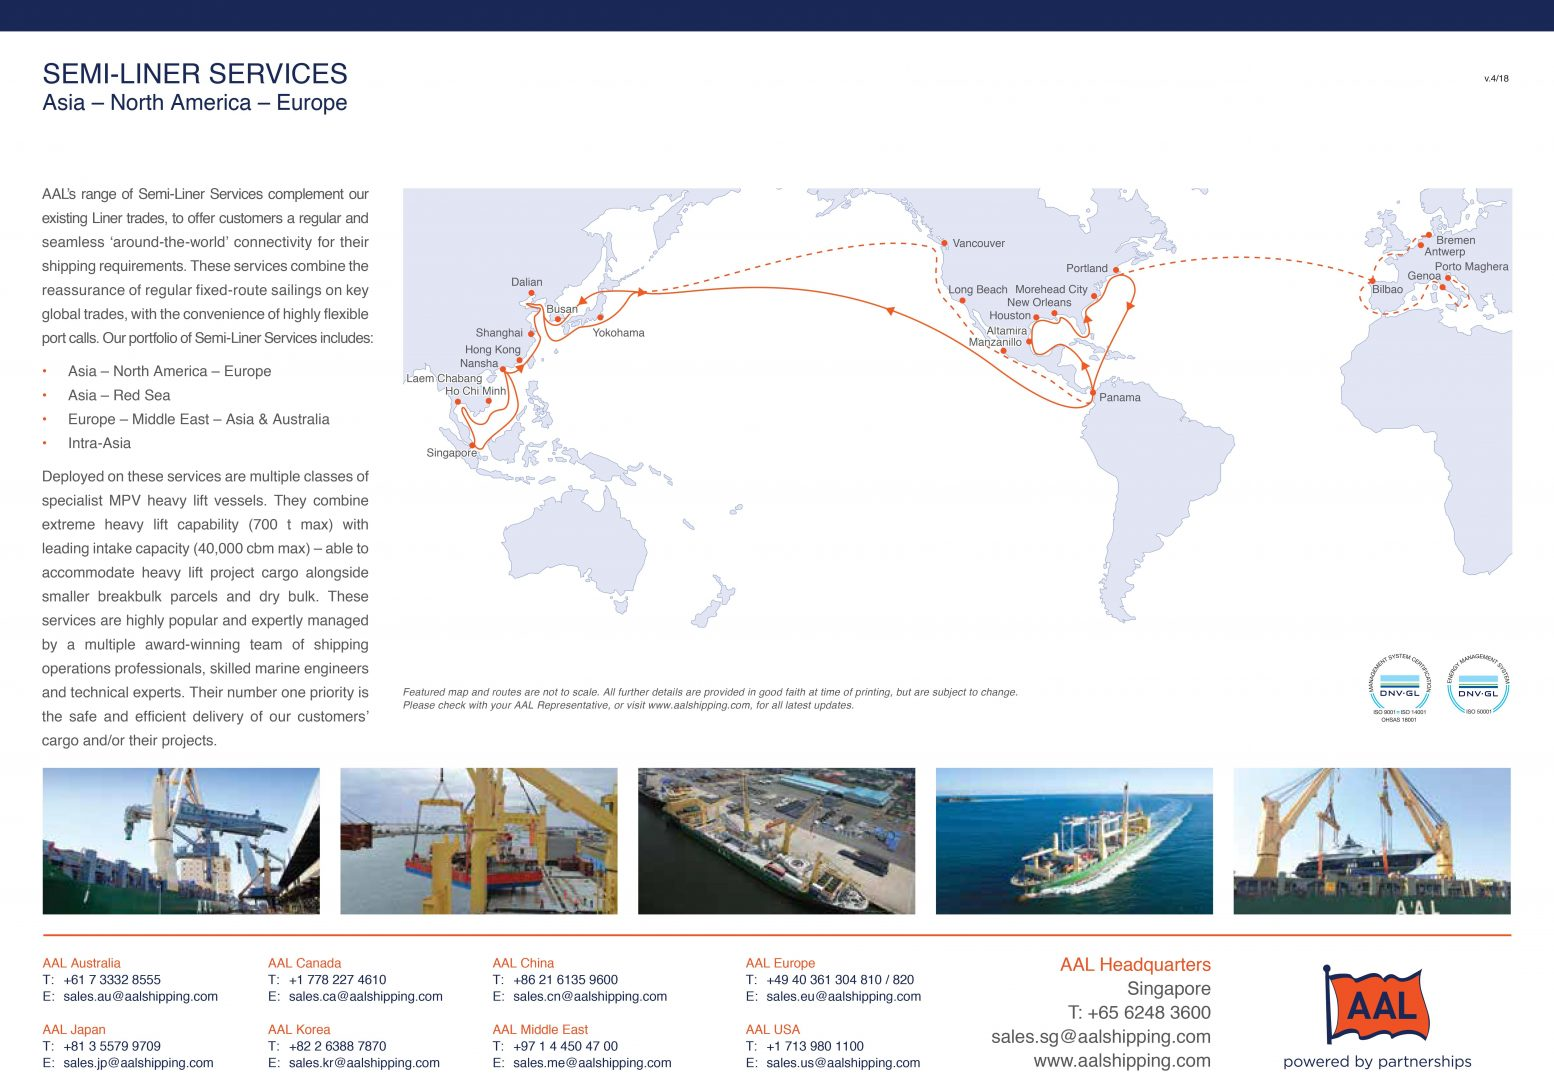 ASIA – NORTH AMERICA – EUROPE SEMI-LINER SERVICE ROUTE MAP